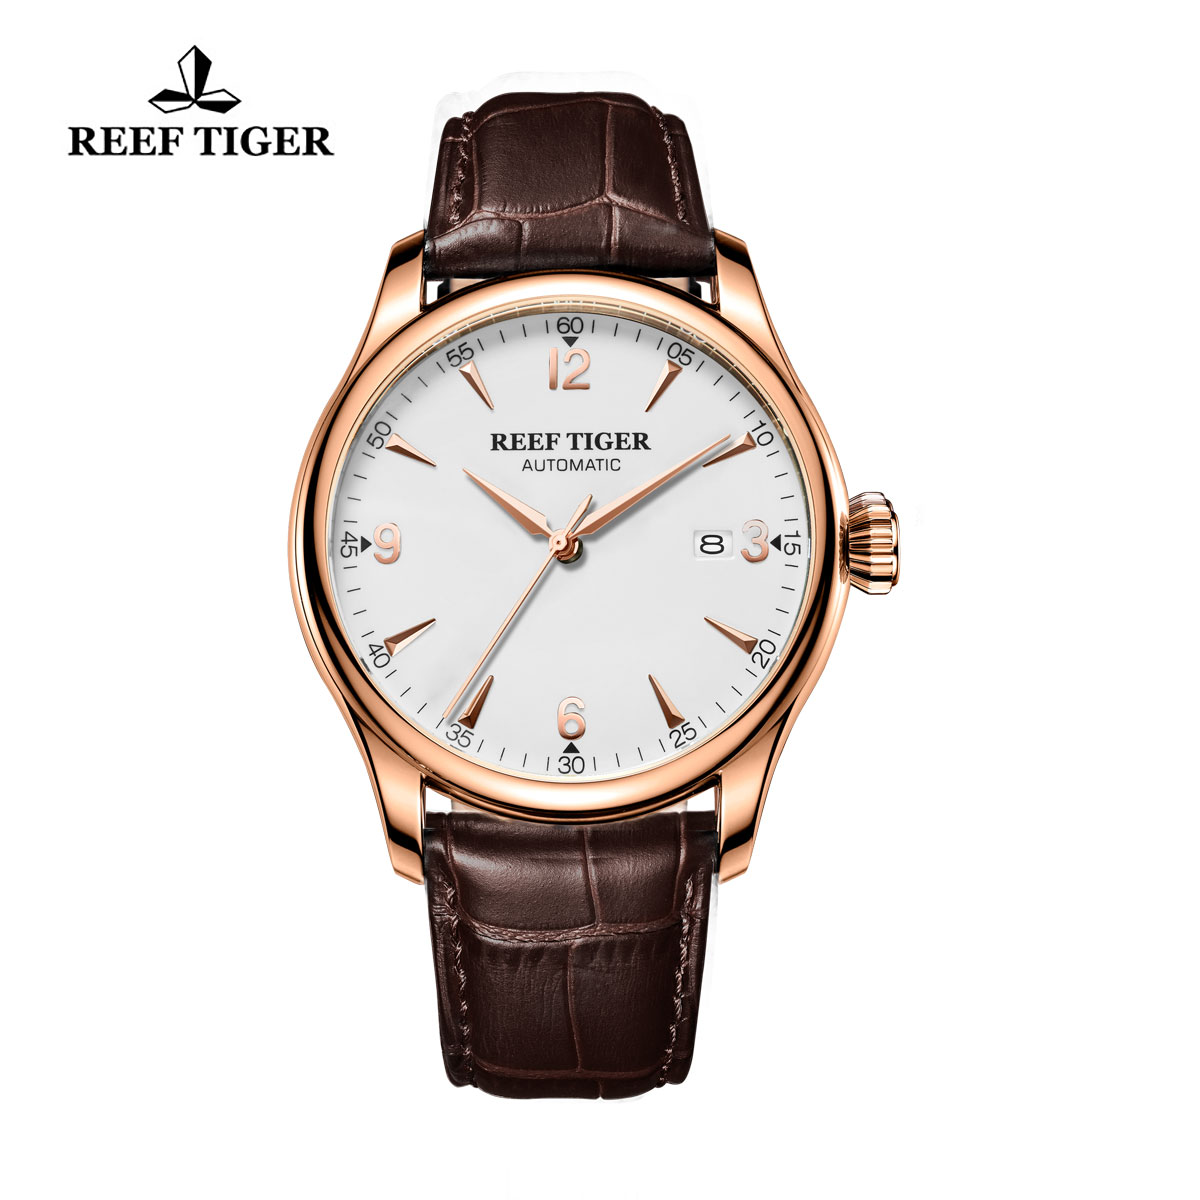 Reef Tiger Heritage Dress Automatic Watch White Dial Calfskin Leather Strap RGA823G-PWB